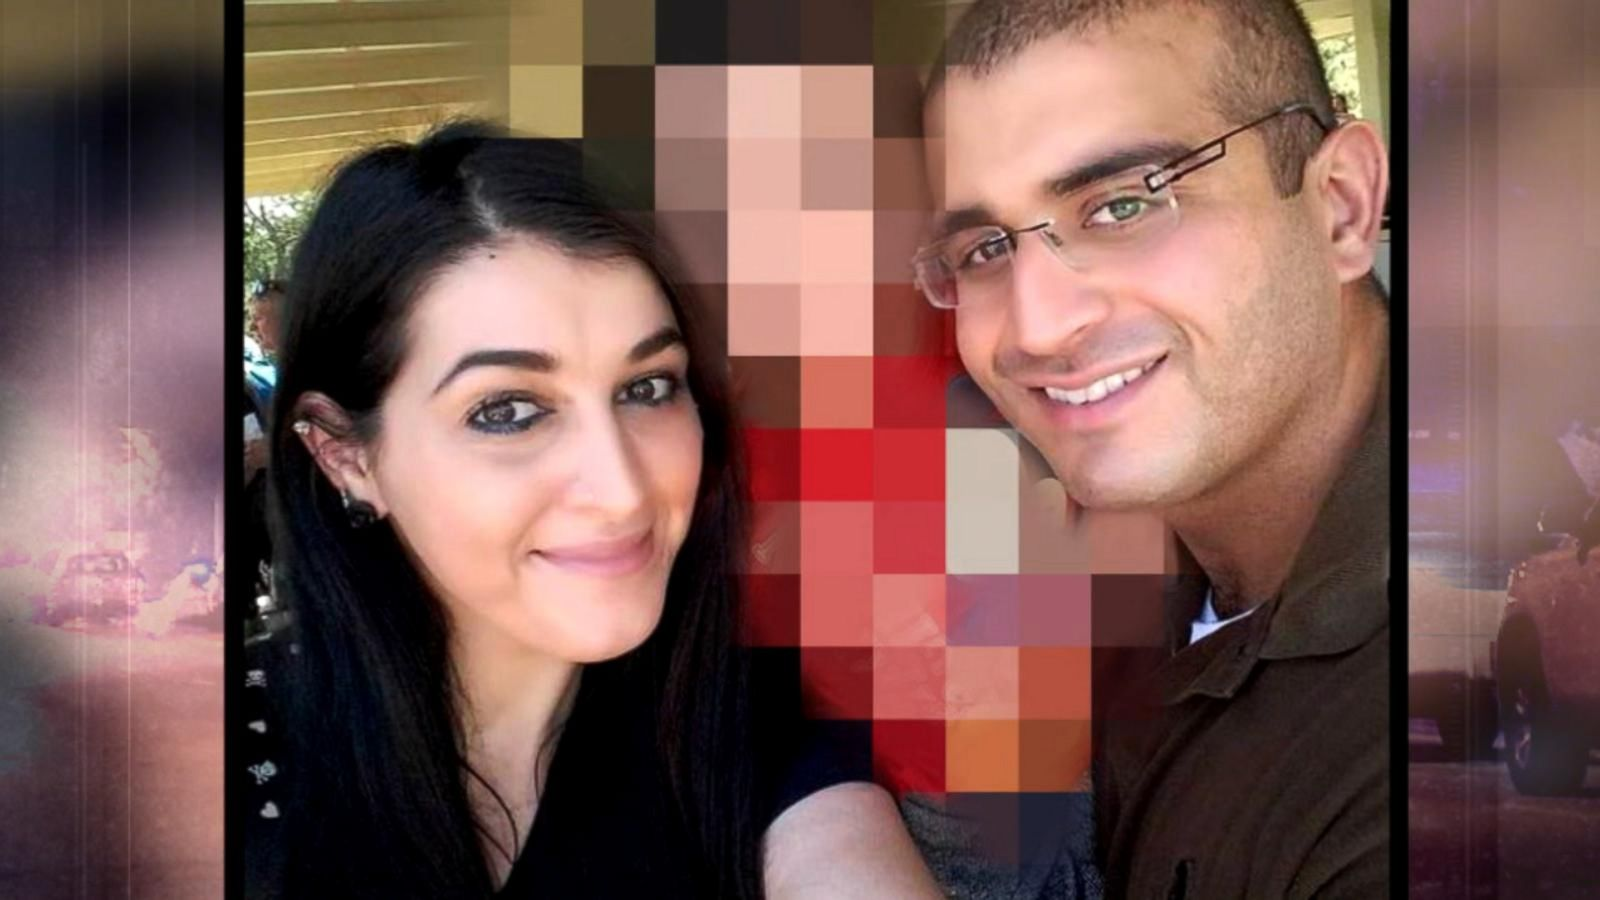 VIDEO: Widow of Orlando Nightclub Gunman Arrested